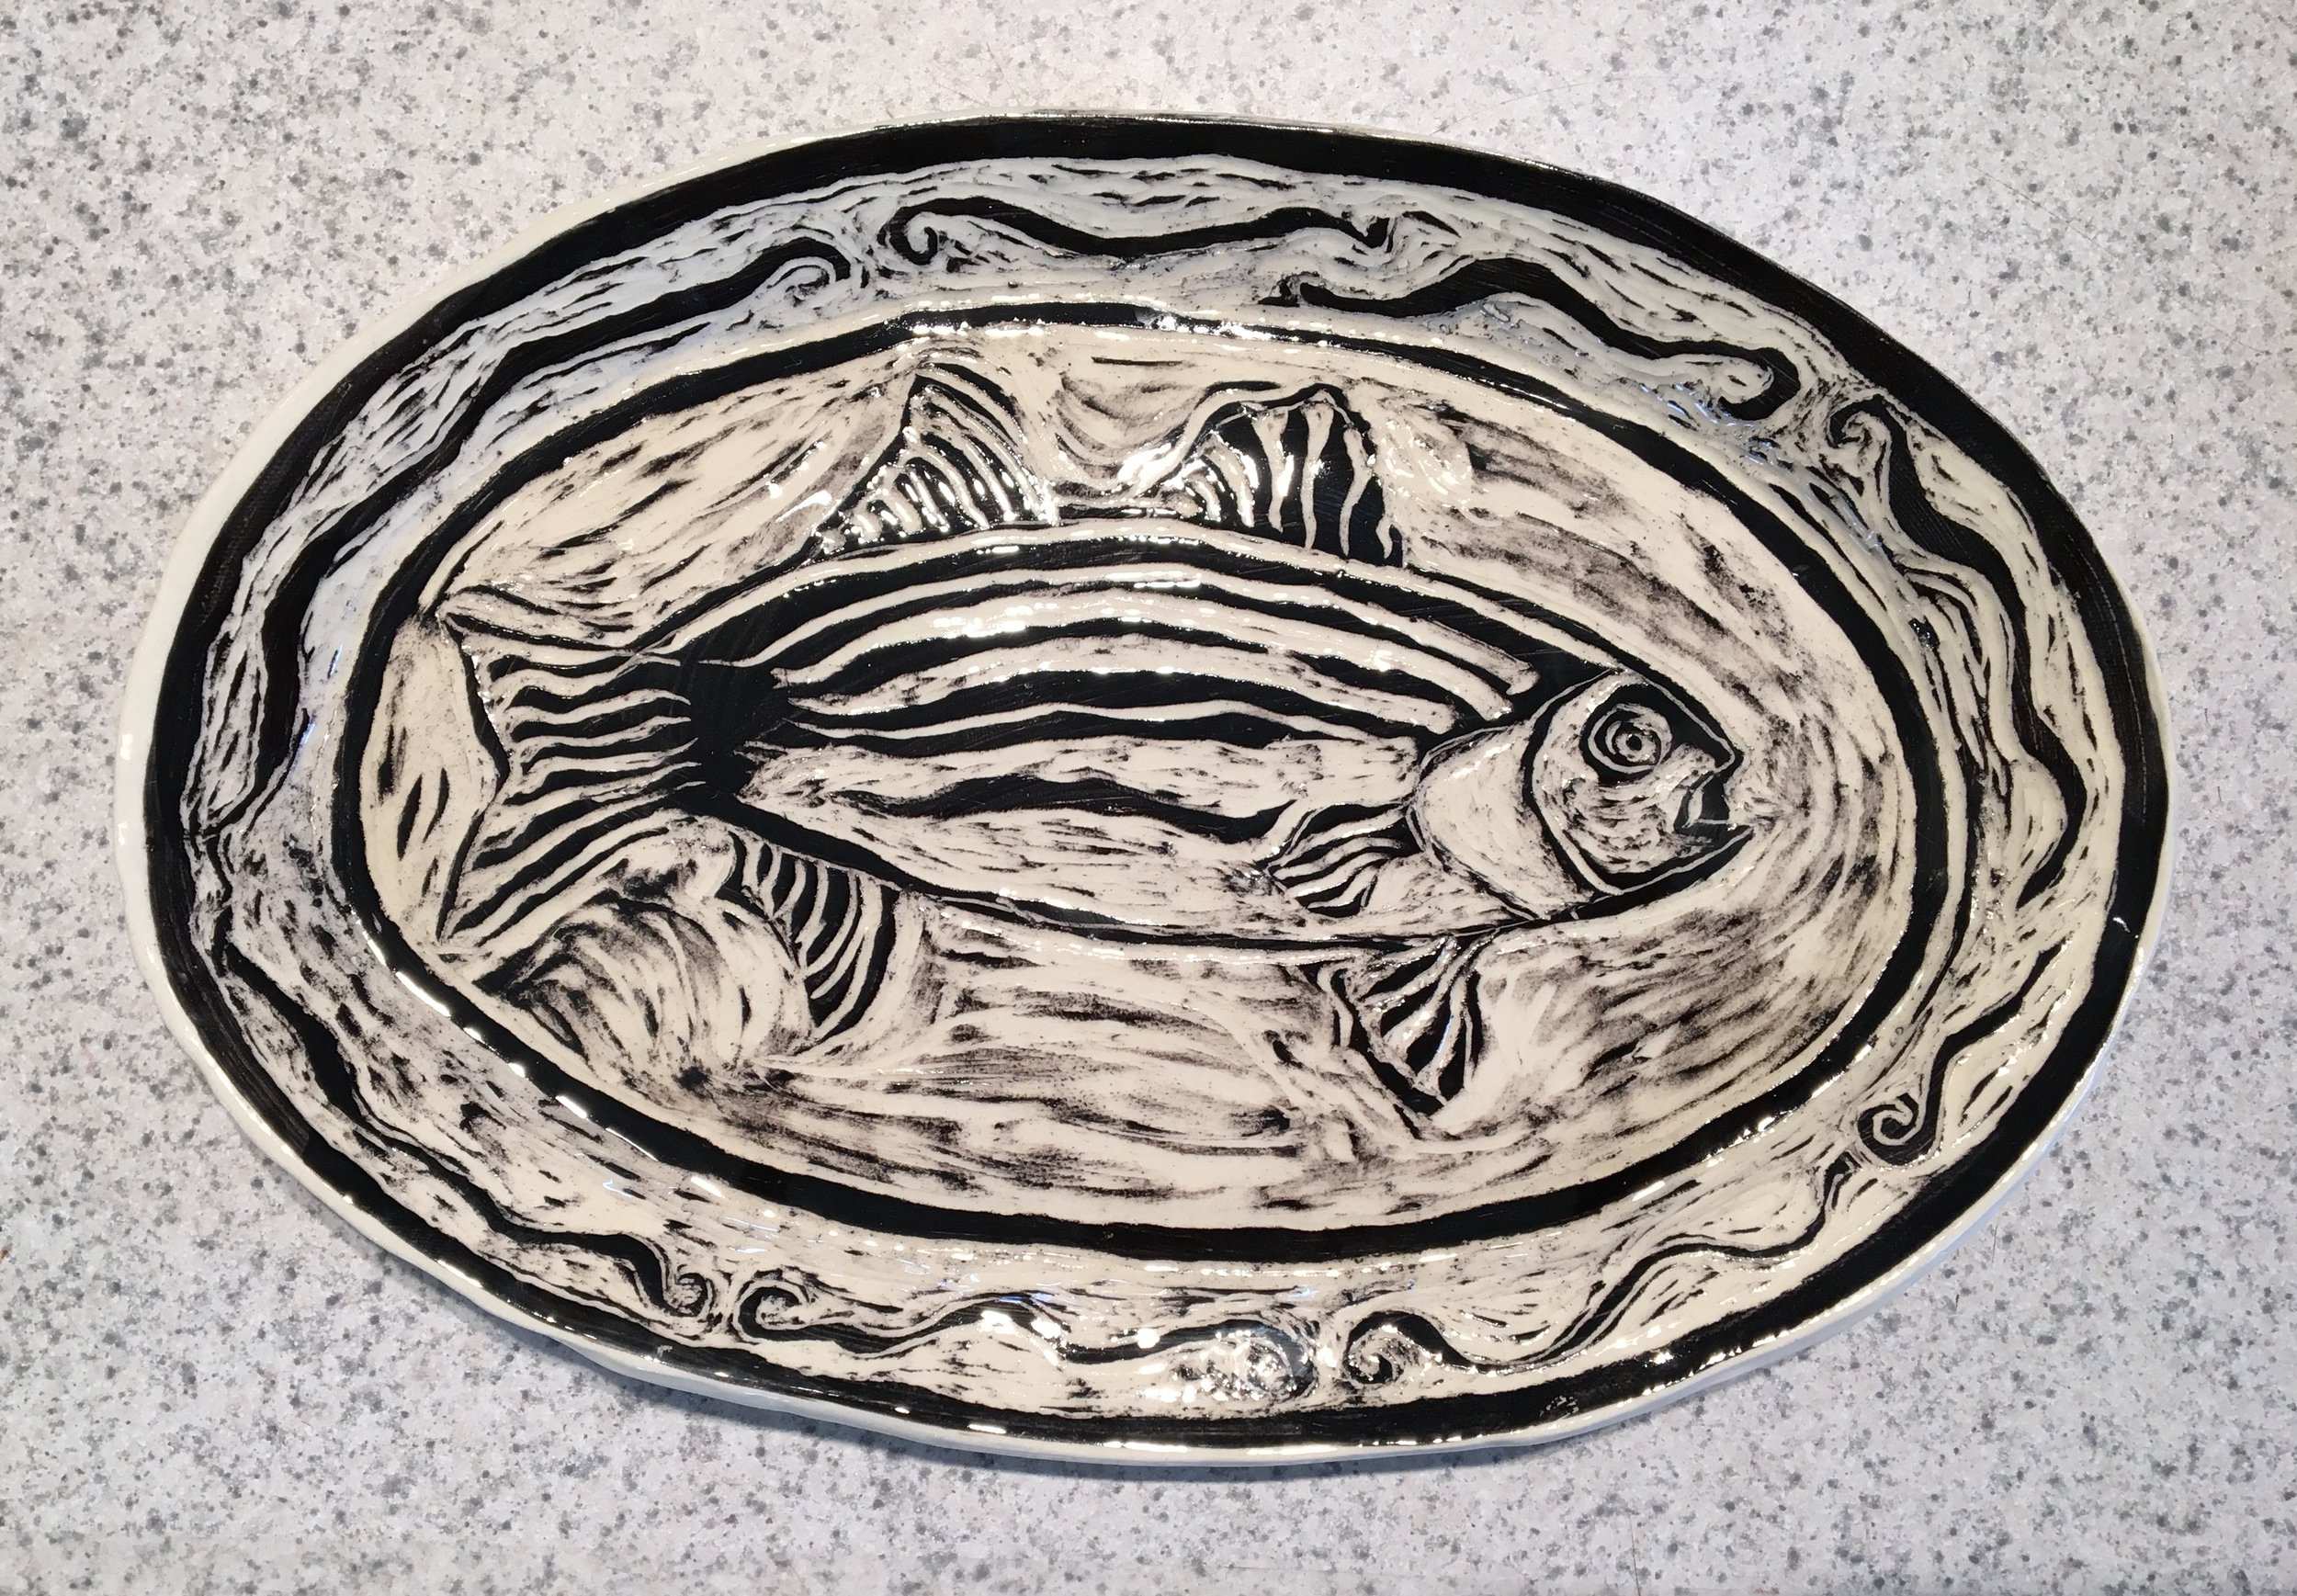 Sgraffito Platter by Constance Mayer